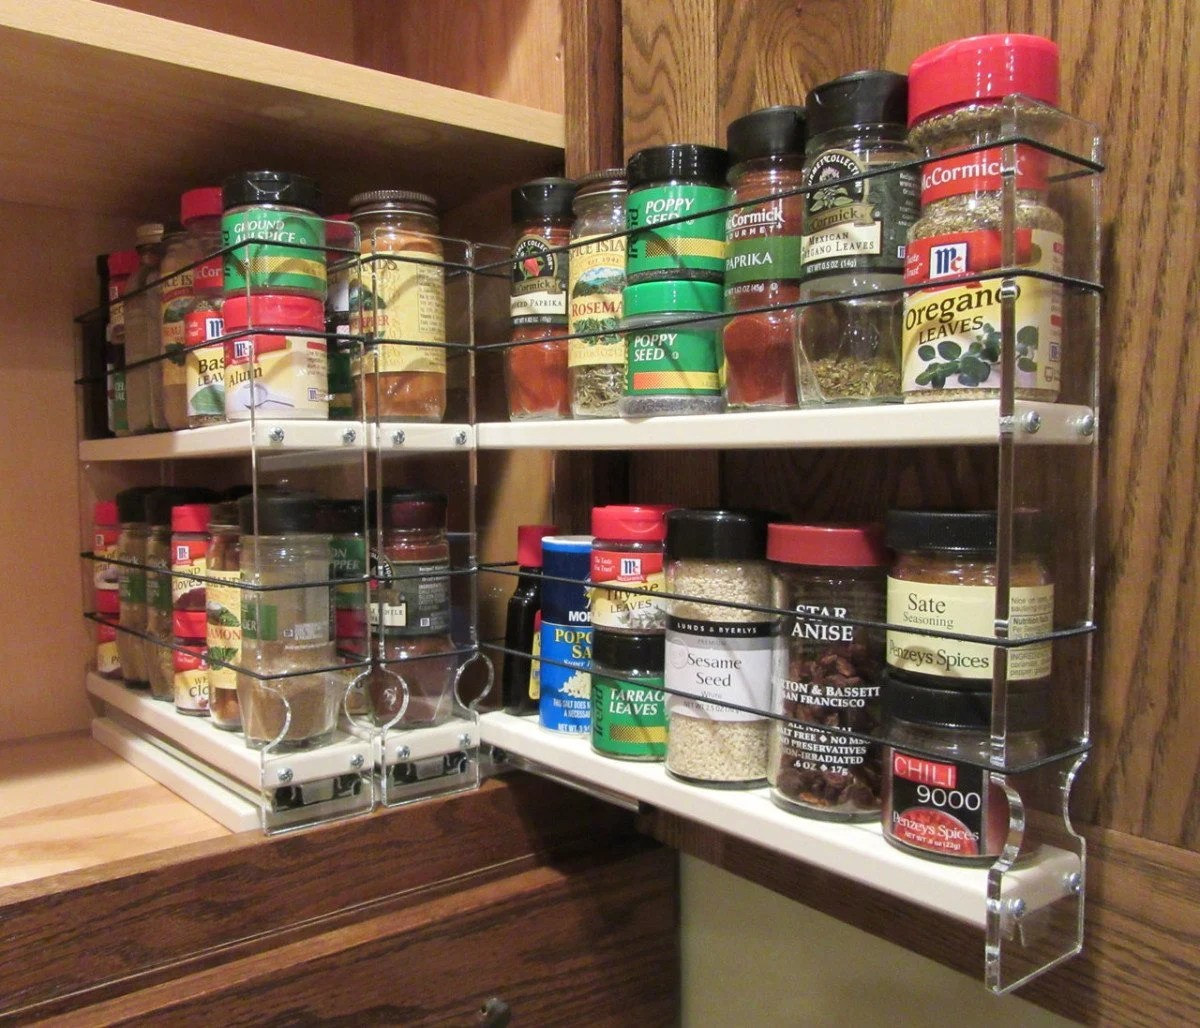 Hackers Help: Suggestions For A Pull-Out Spice Rack